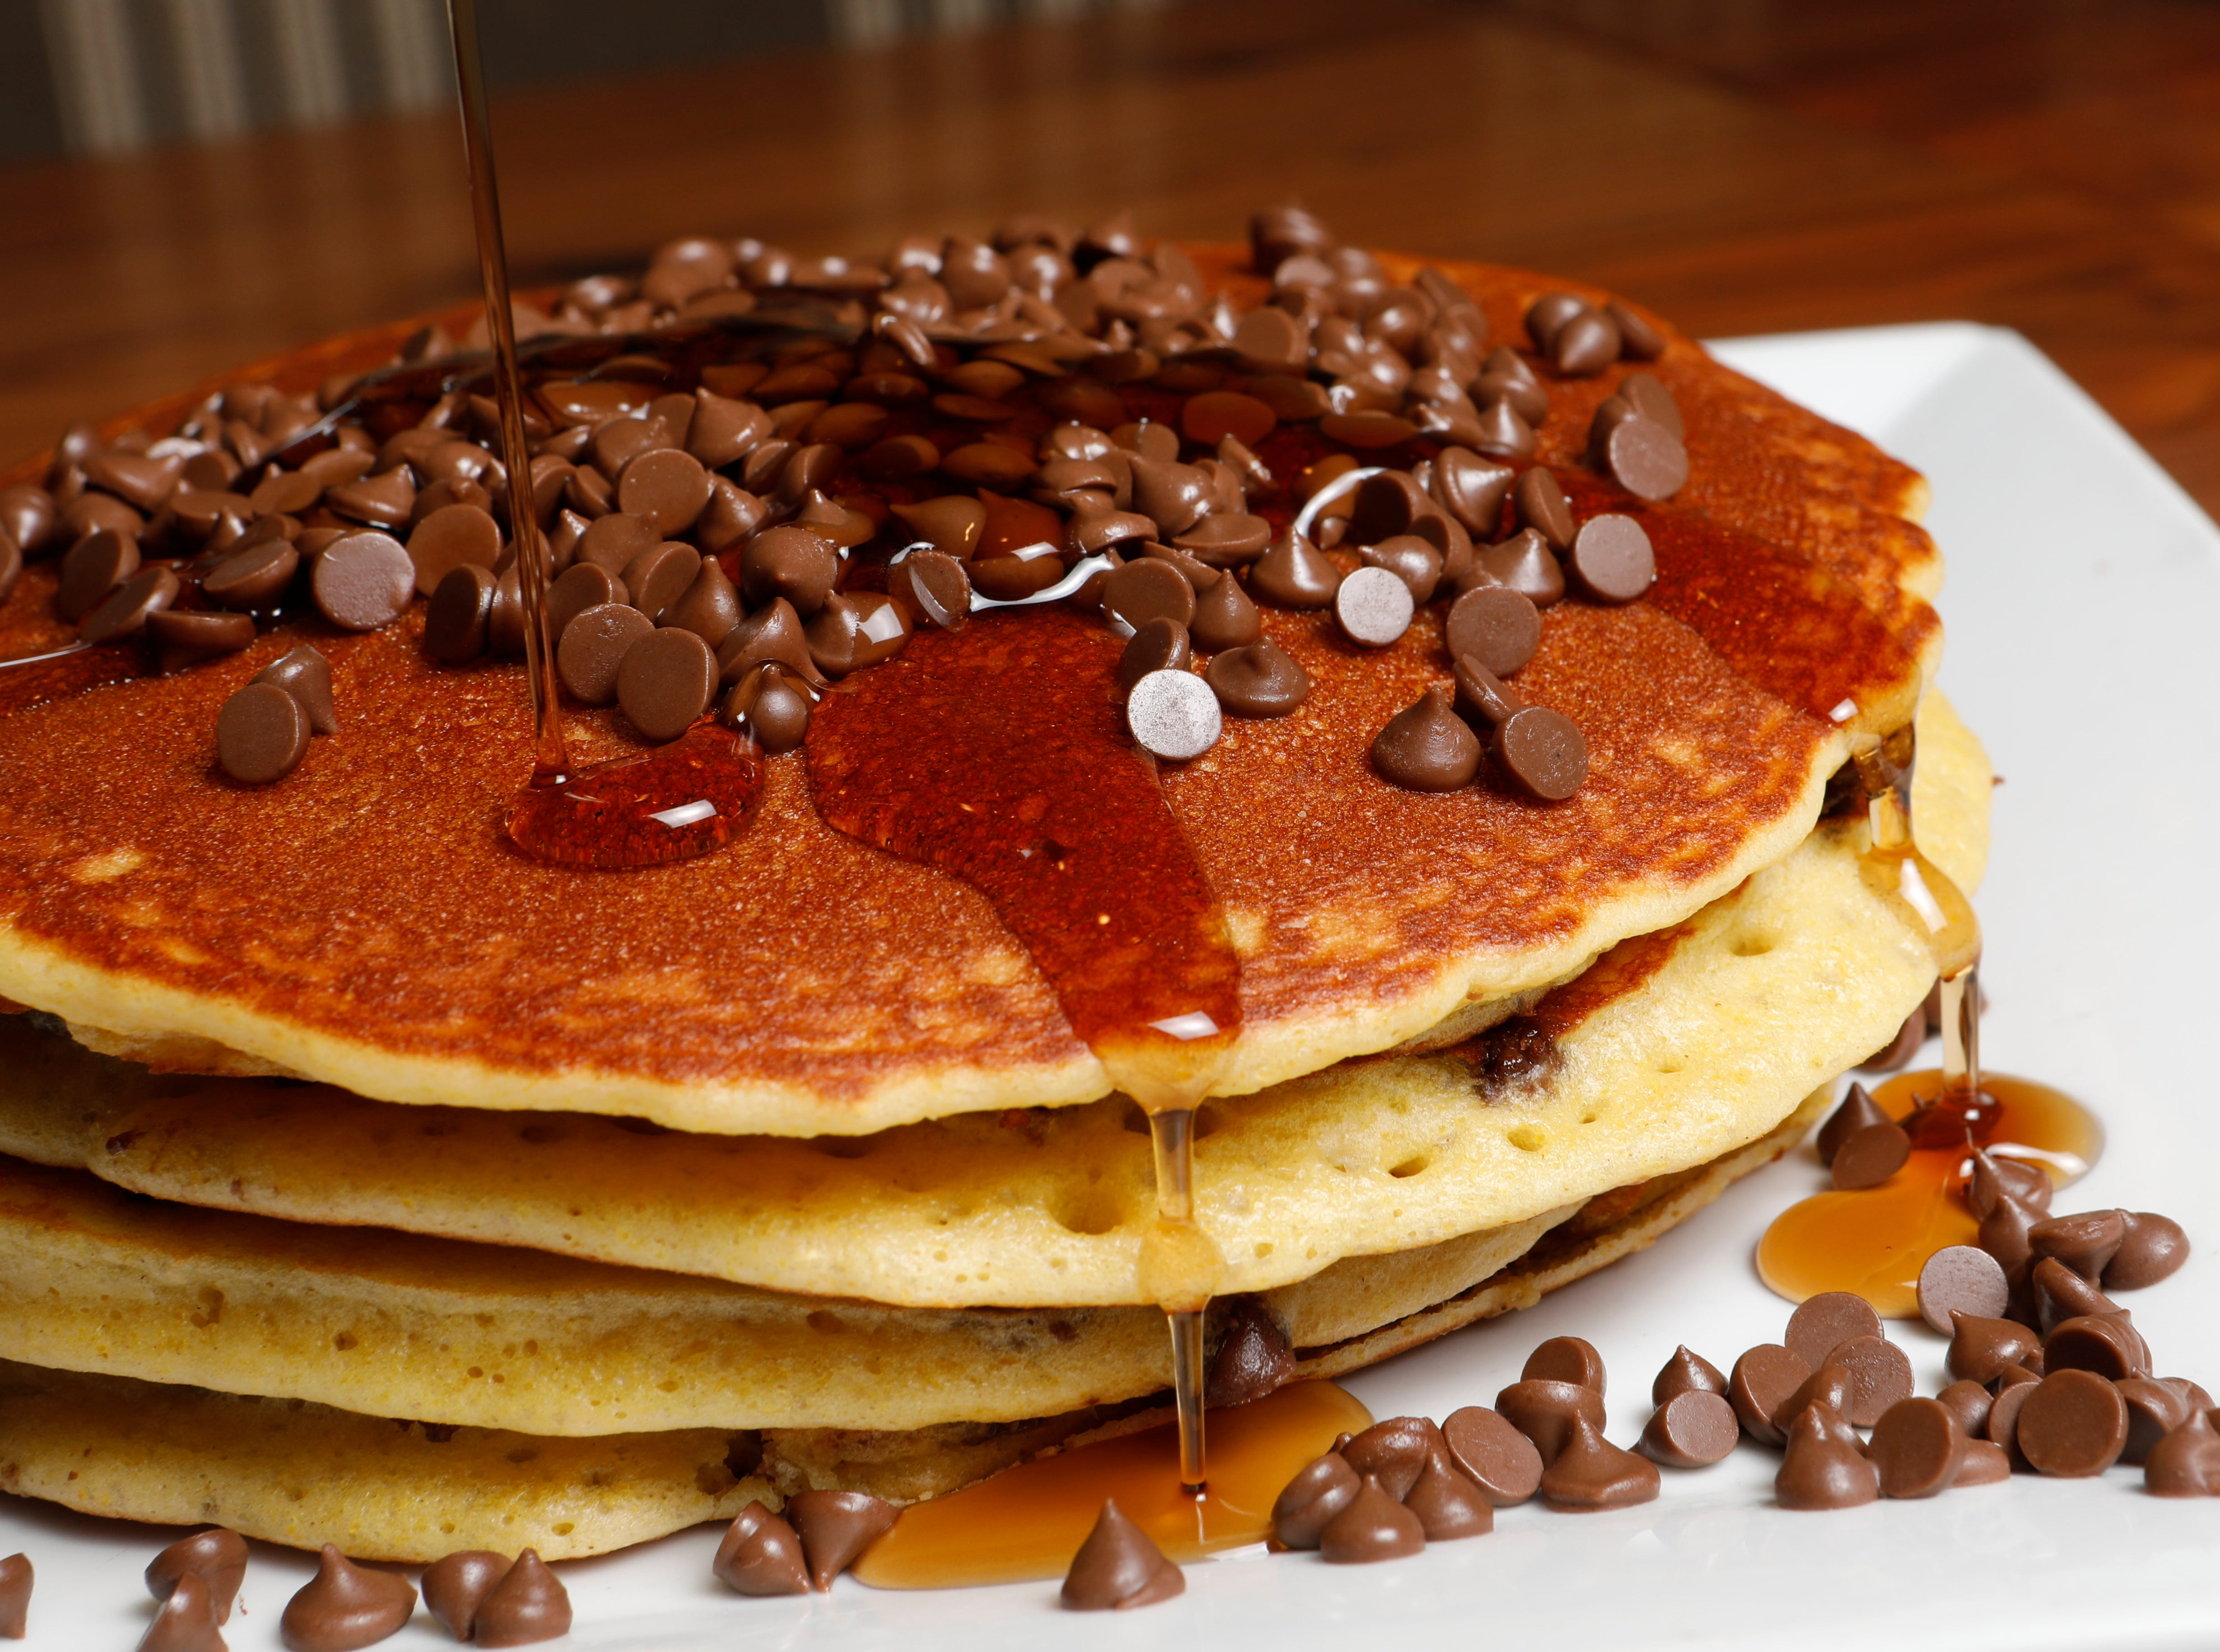 The Chocolate Chip stack pancake made at the Mount Kisco Diner on Dec. 14, 2018.